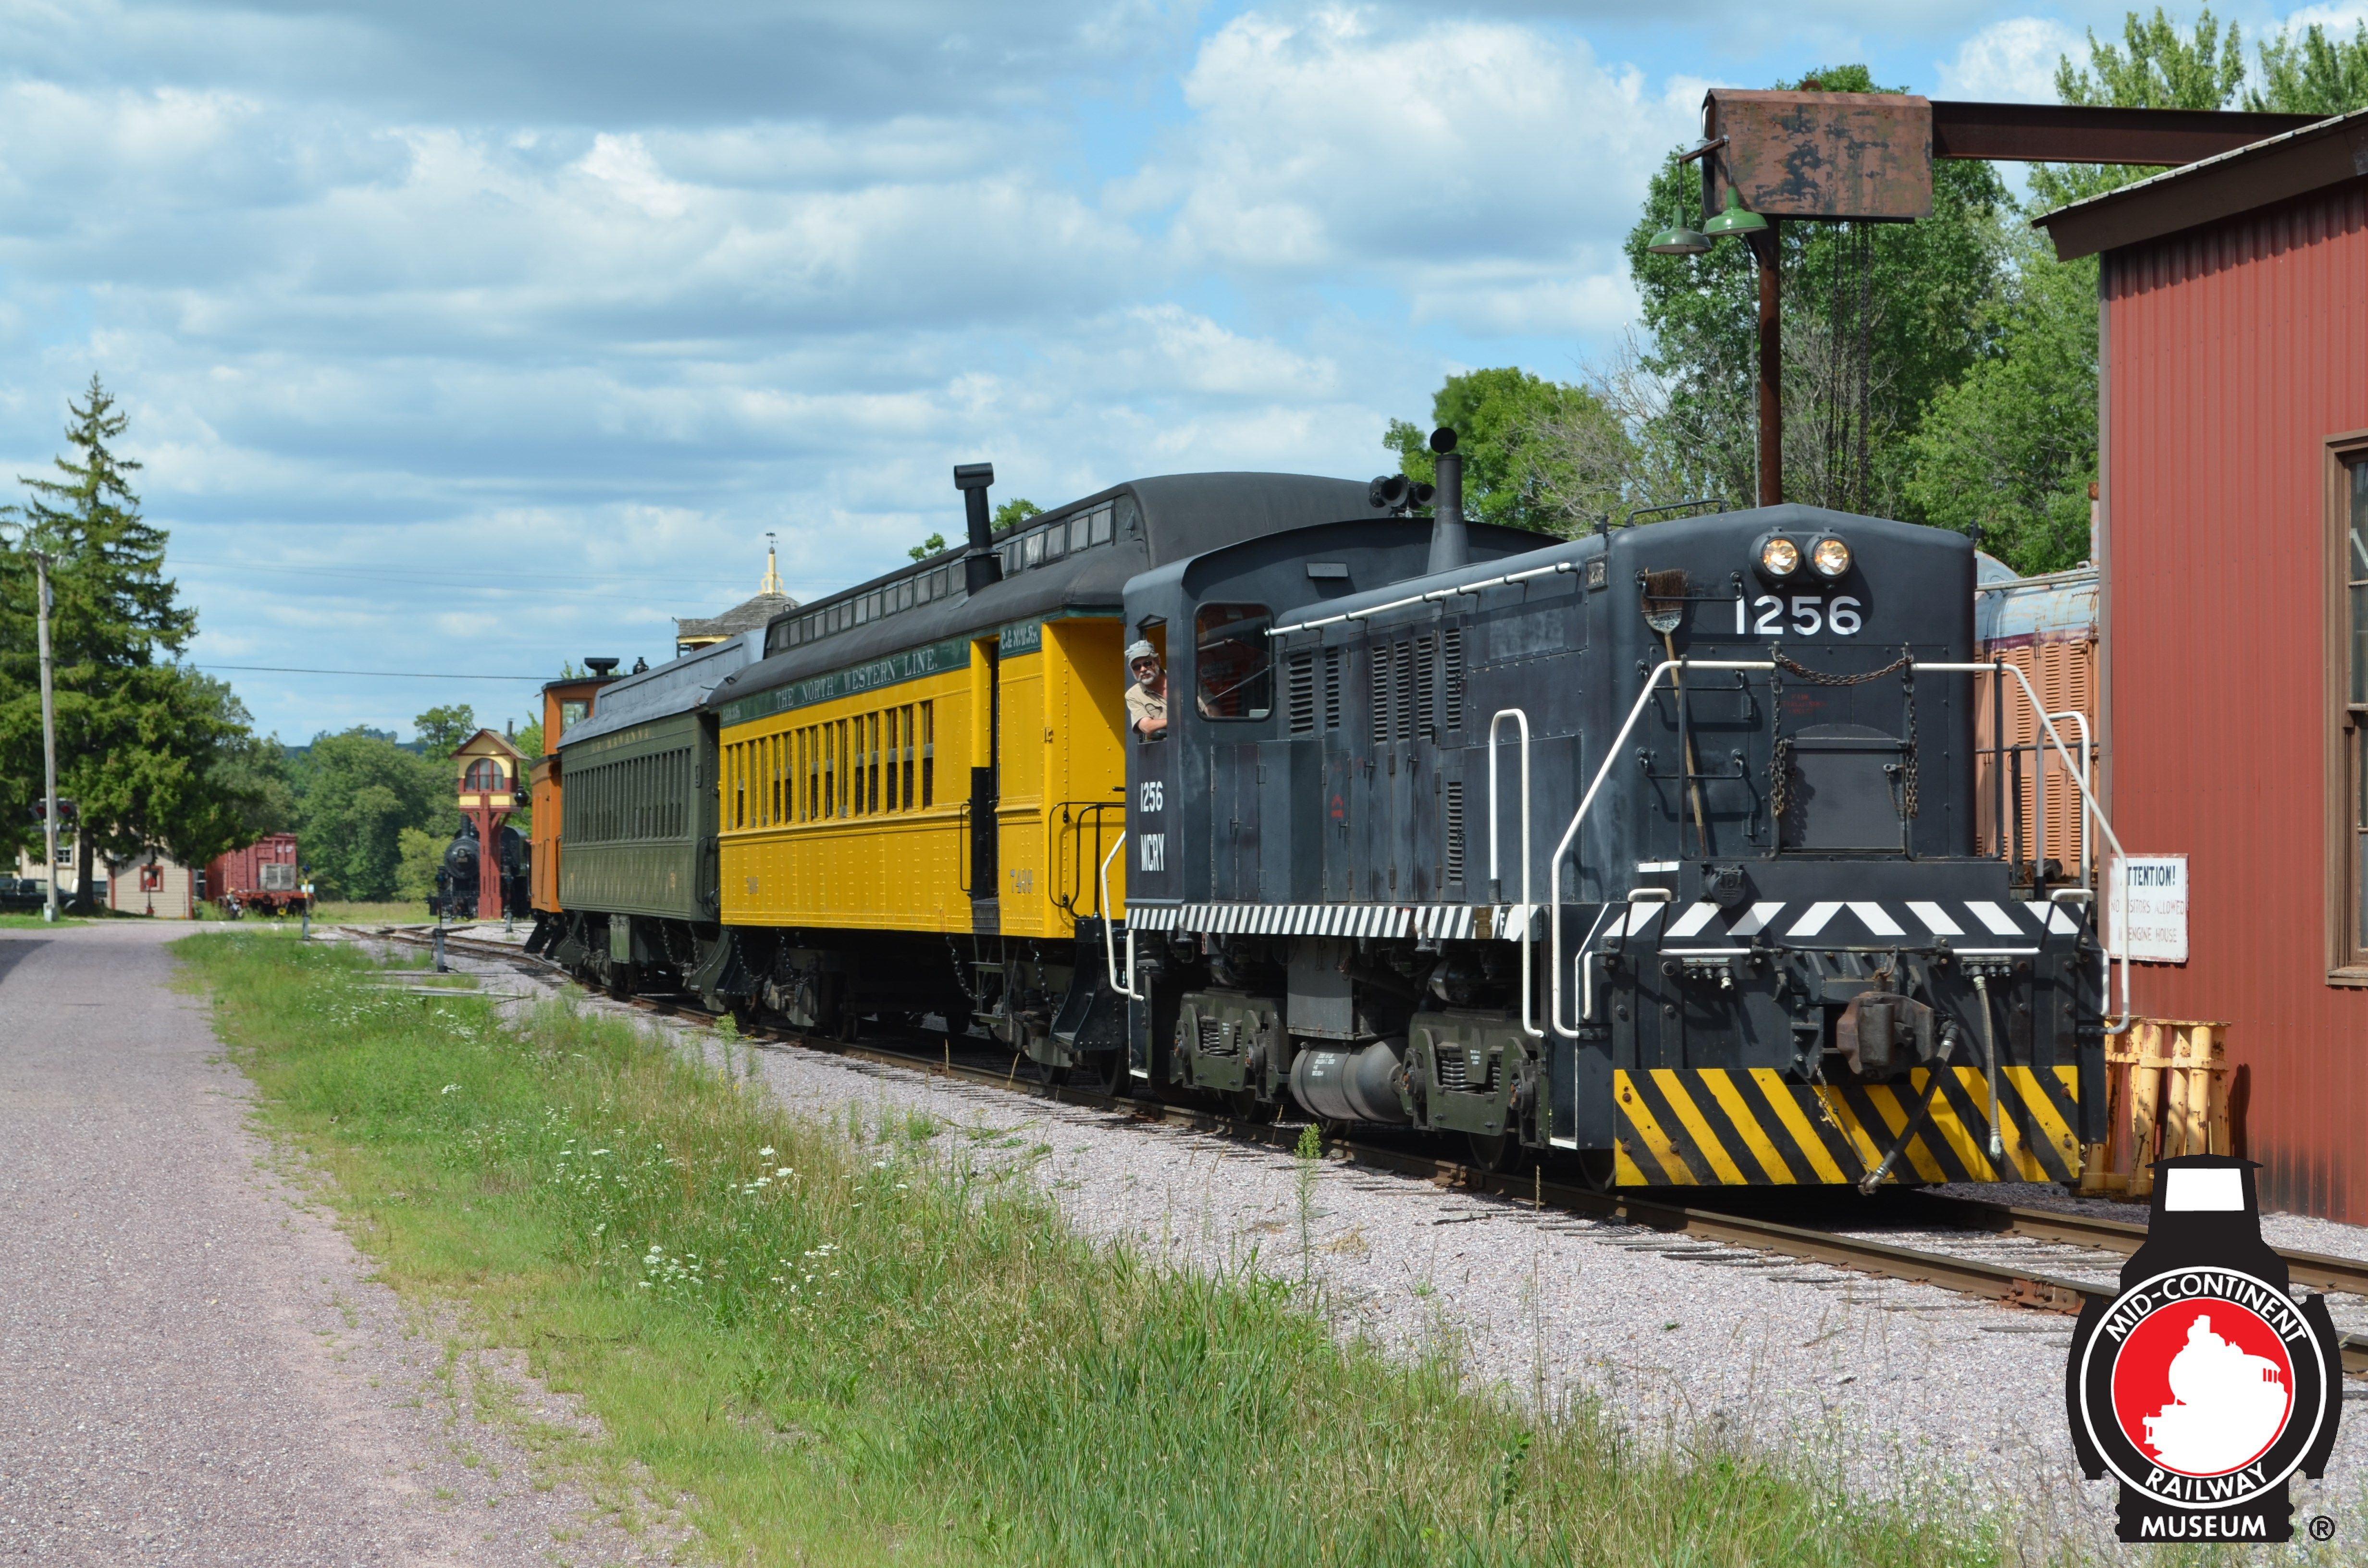 The Mid Continent Railway Museum Train Has Just Departed North Freedom Wi And Is Passing Through The Museum Display Y Railway Museum Mid Continent Train Rides